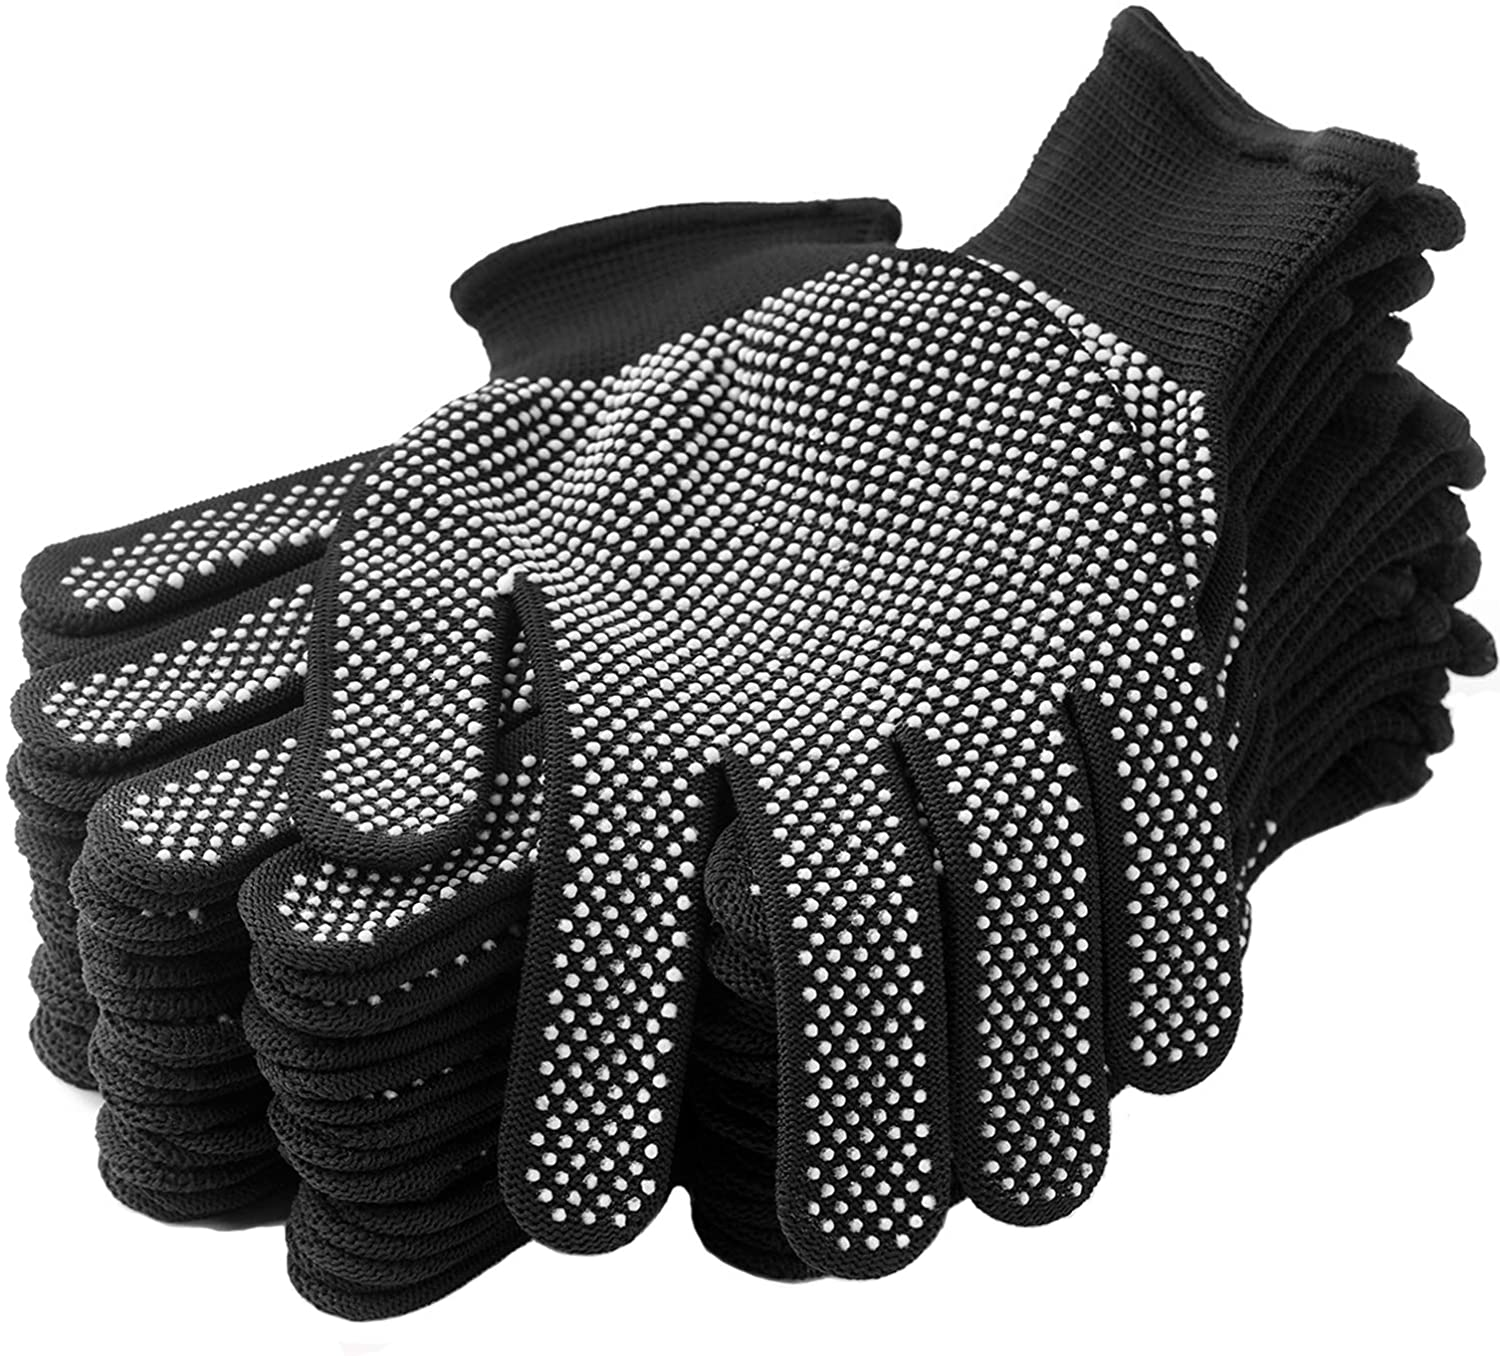 24Pcs Work Gloves Anti-slip Knitted Stretchy Cloth Glove Thin Moist Glove Liners